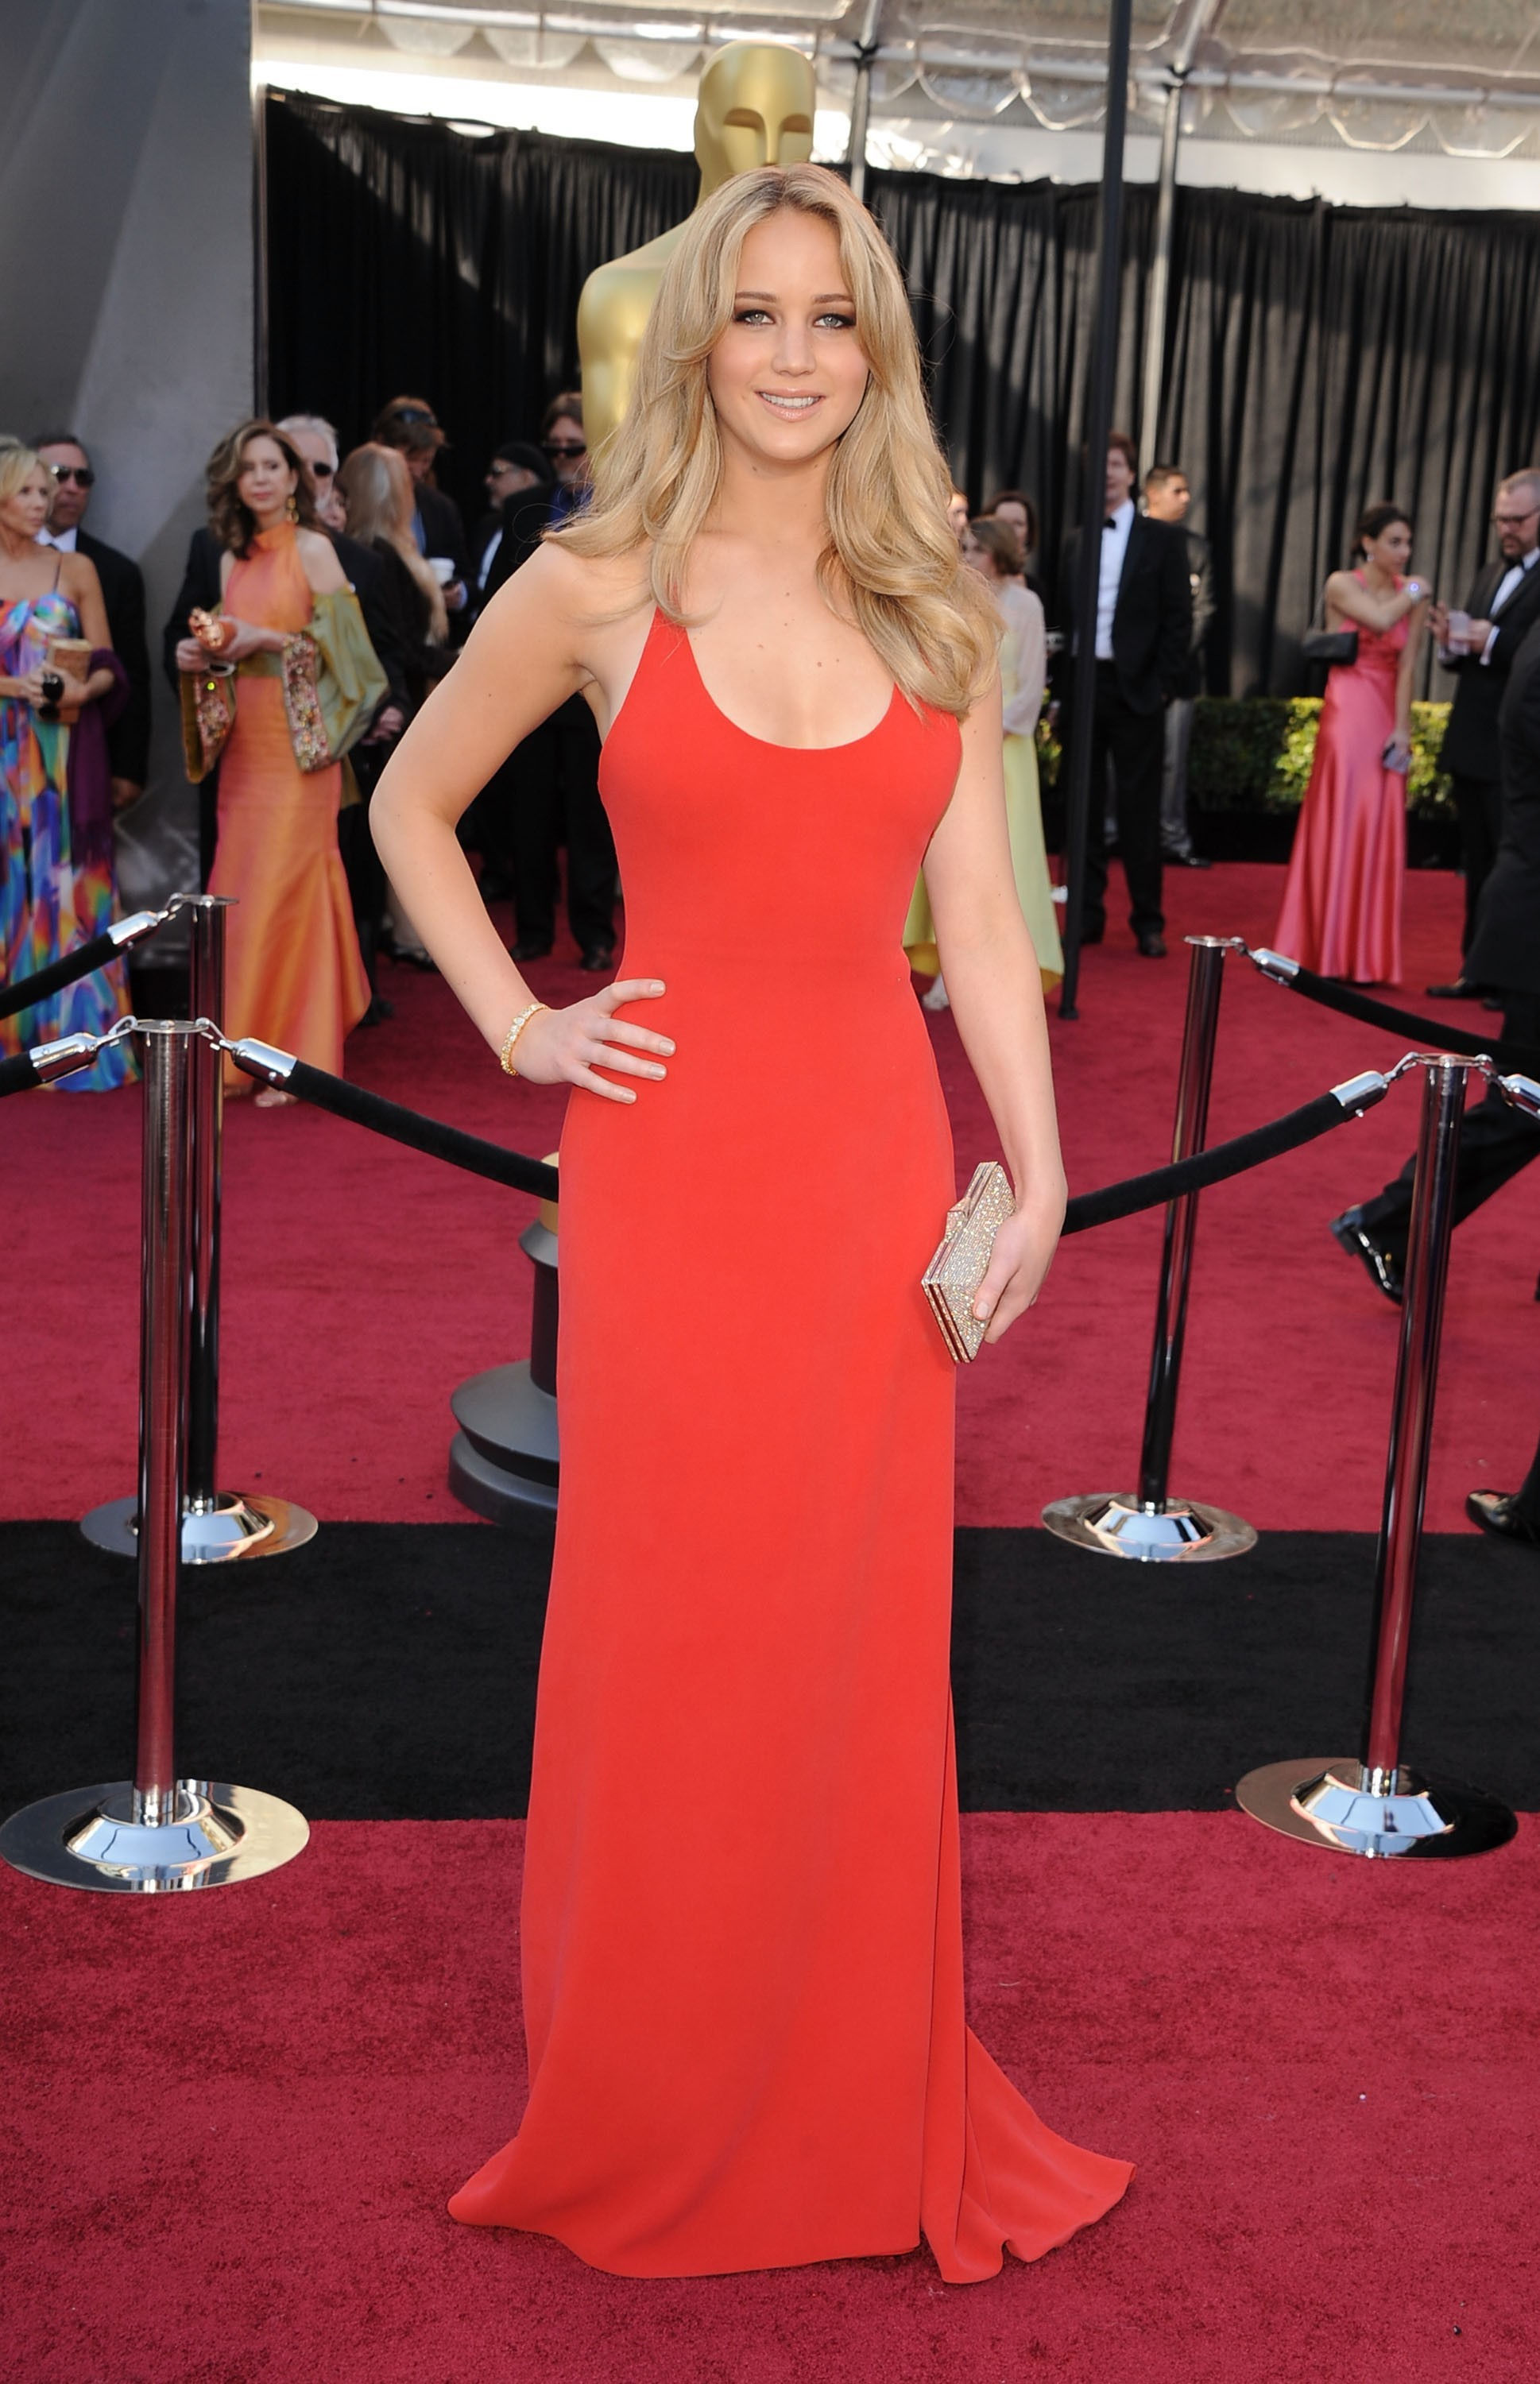 Best red dress moments on the red carpet